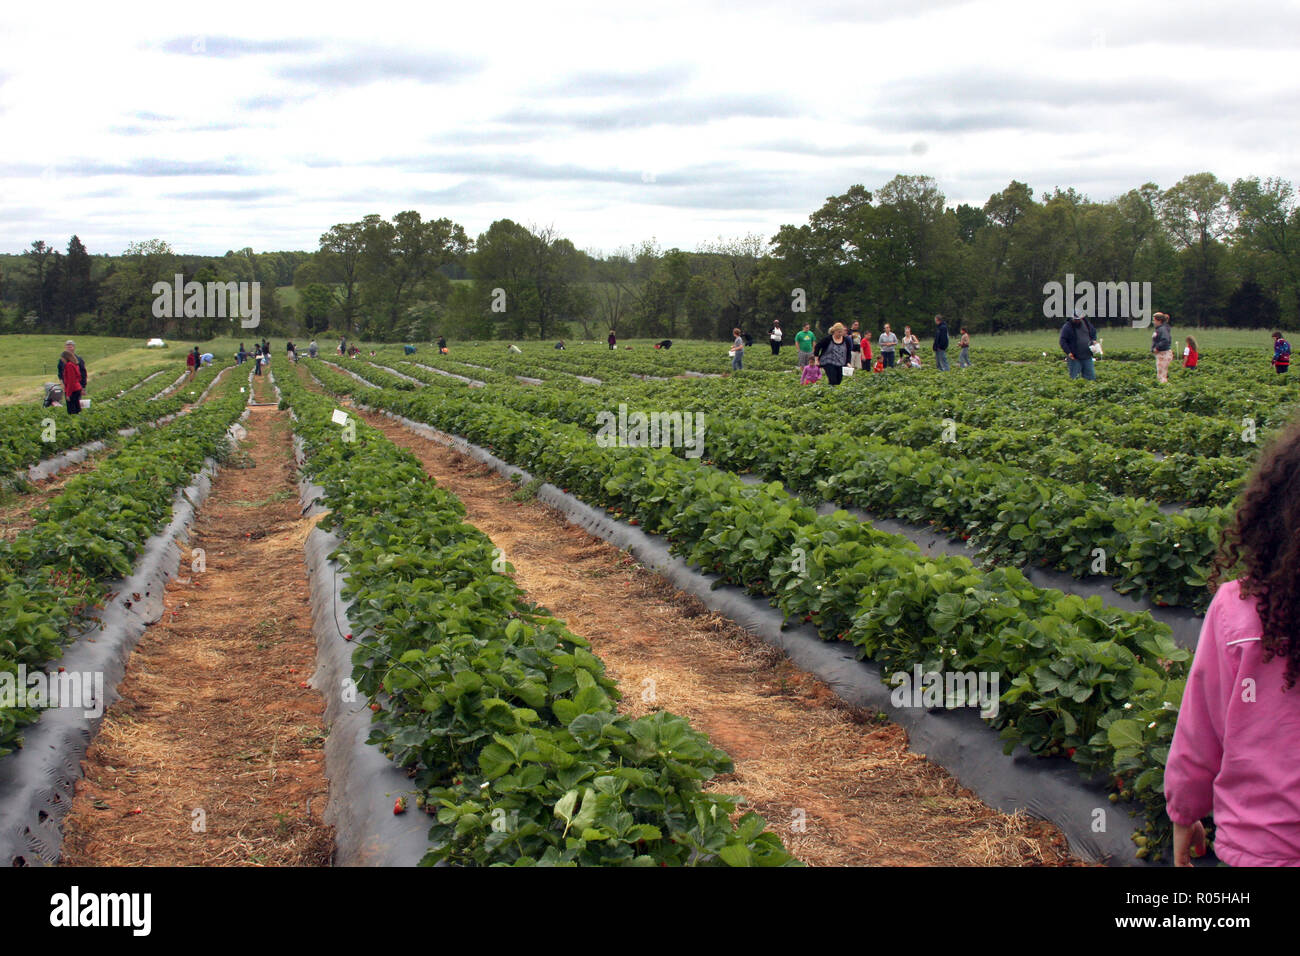 Yoders Stock Photos & Yoders Stock Images - Alamy